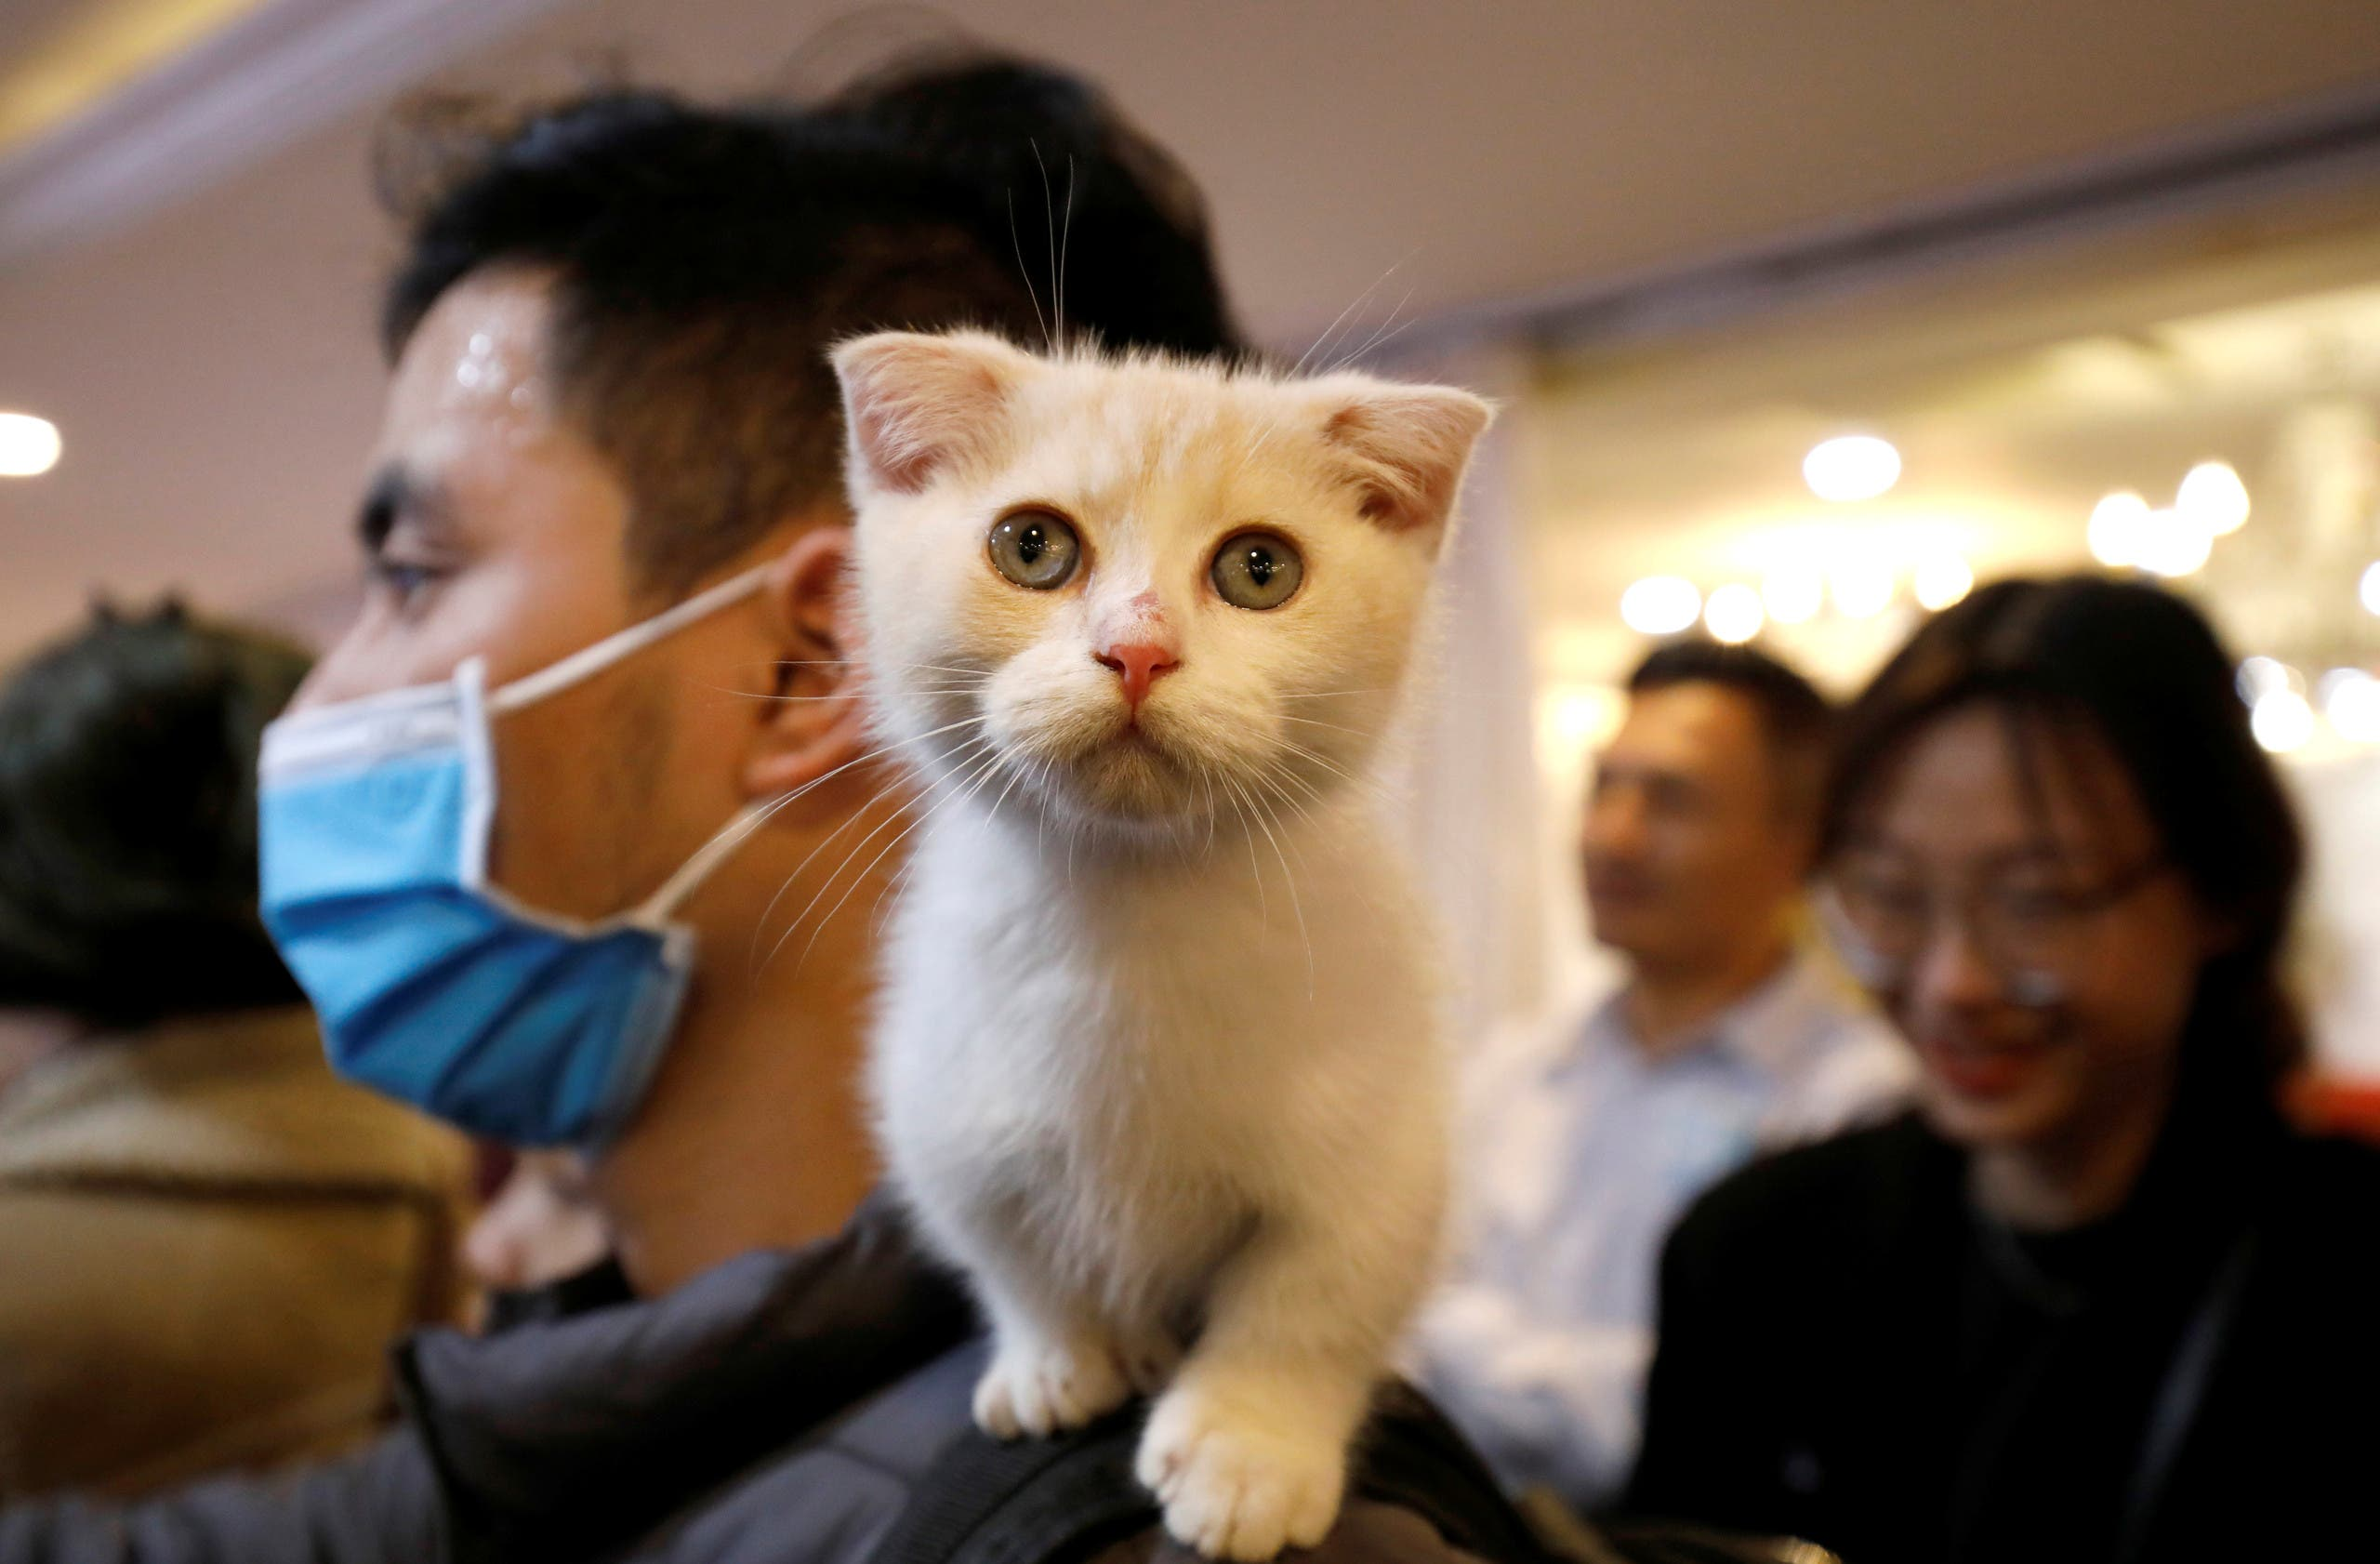 A cat is seen on the shoulder of her owner during the Vietnam's first cat show in Hanoi, Vietnam February 16, 2020. REUTERS